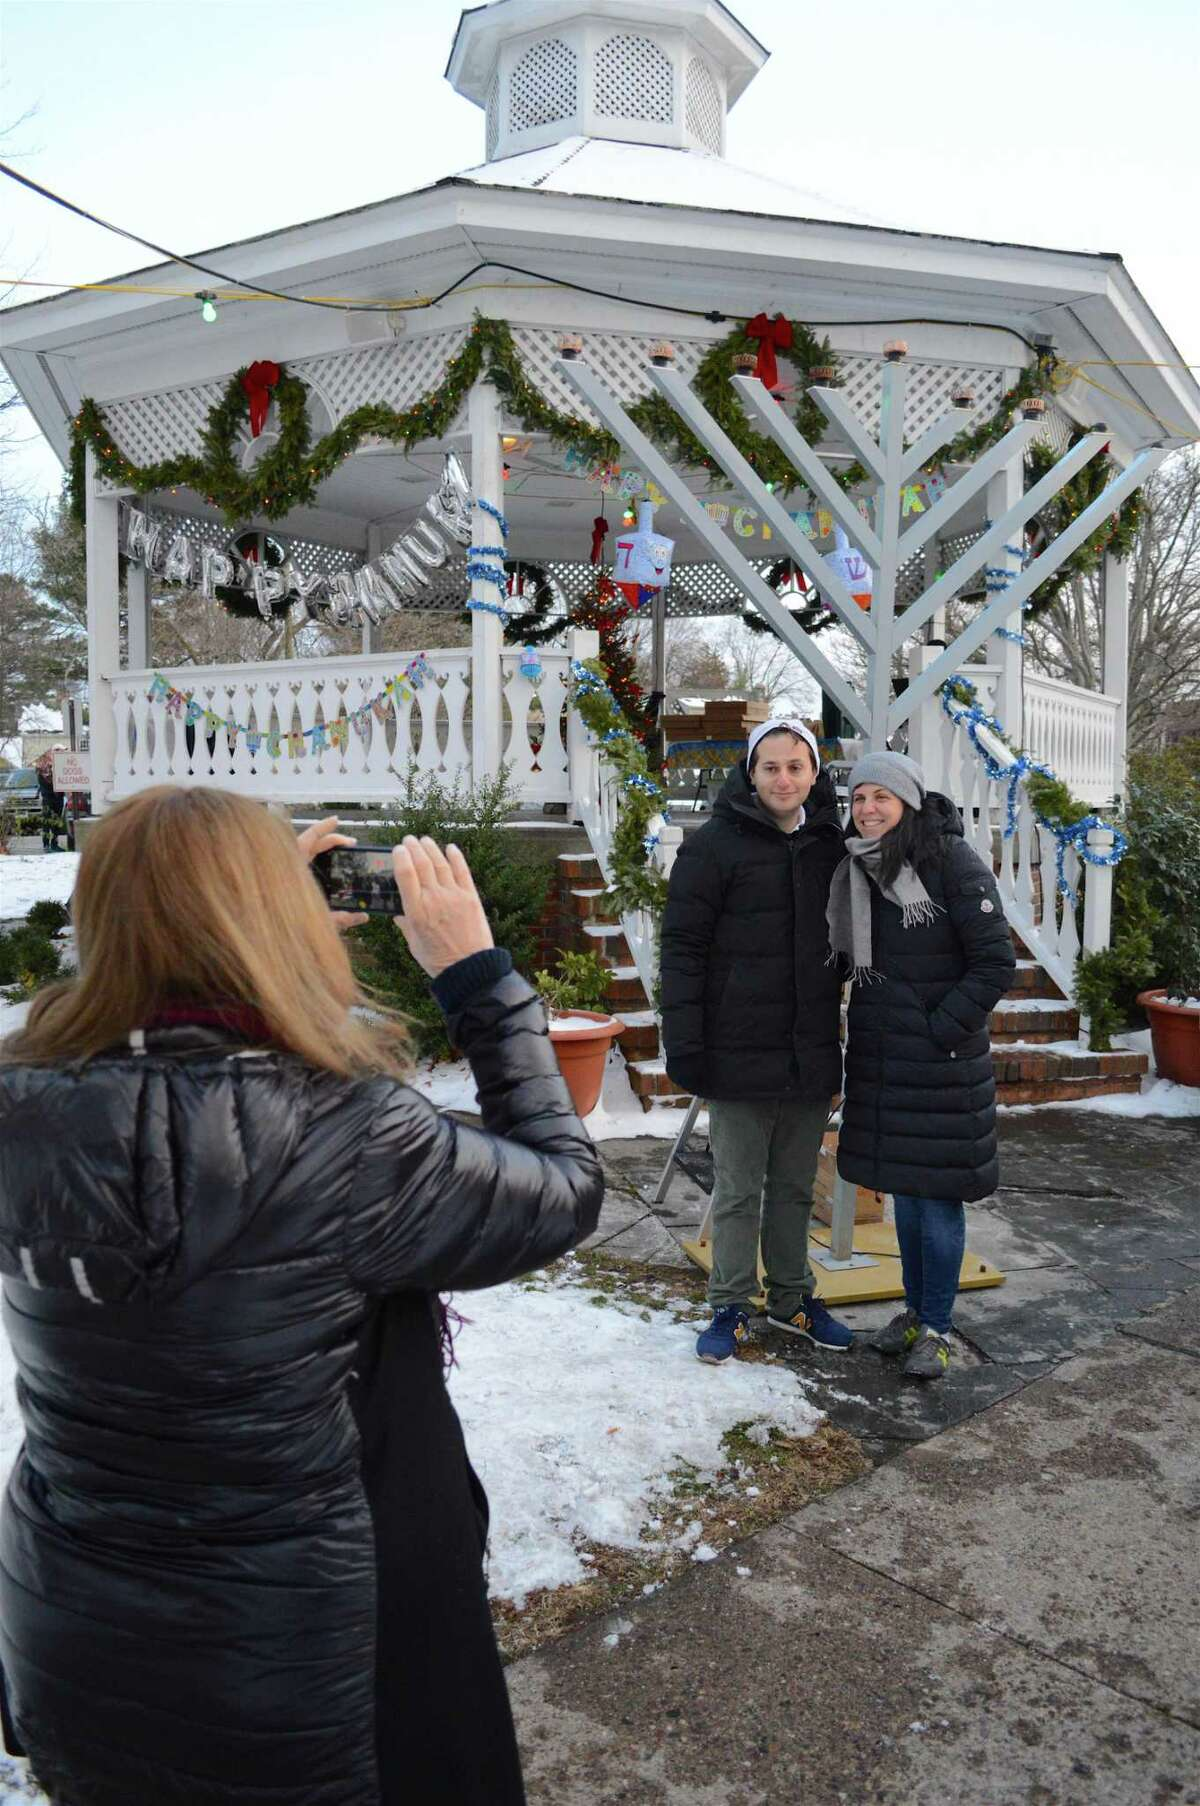 Vivian Shahrabani, of Westport, gets a shot of her friends Jonathan and Jacqueline Simon of New York City at the Hanukkah menorah lighting on Sherman Green, organized by Chabad of Fairfield, Sunday, Dec. 17, 2017, in Fairfield, Conn.